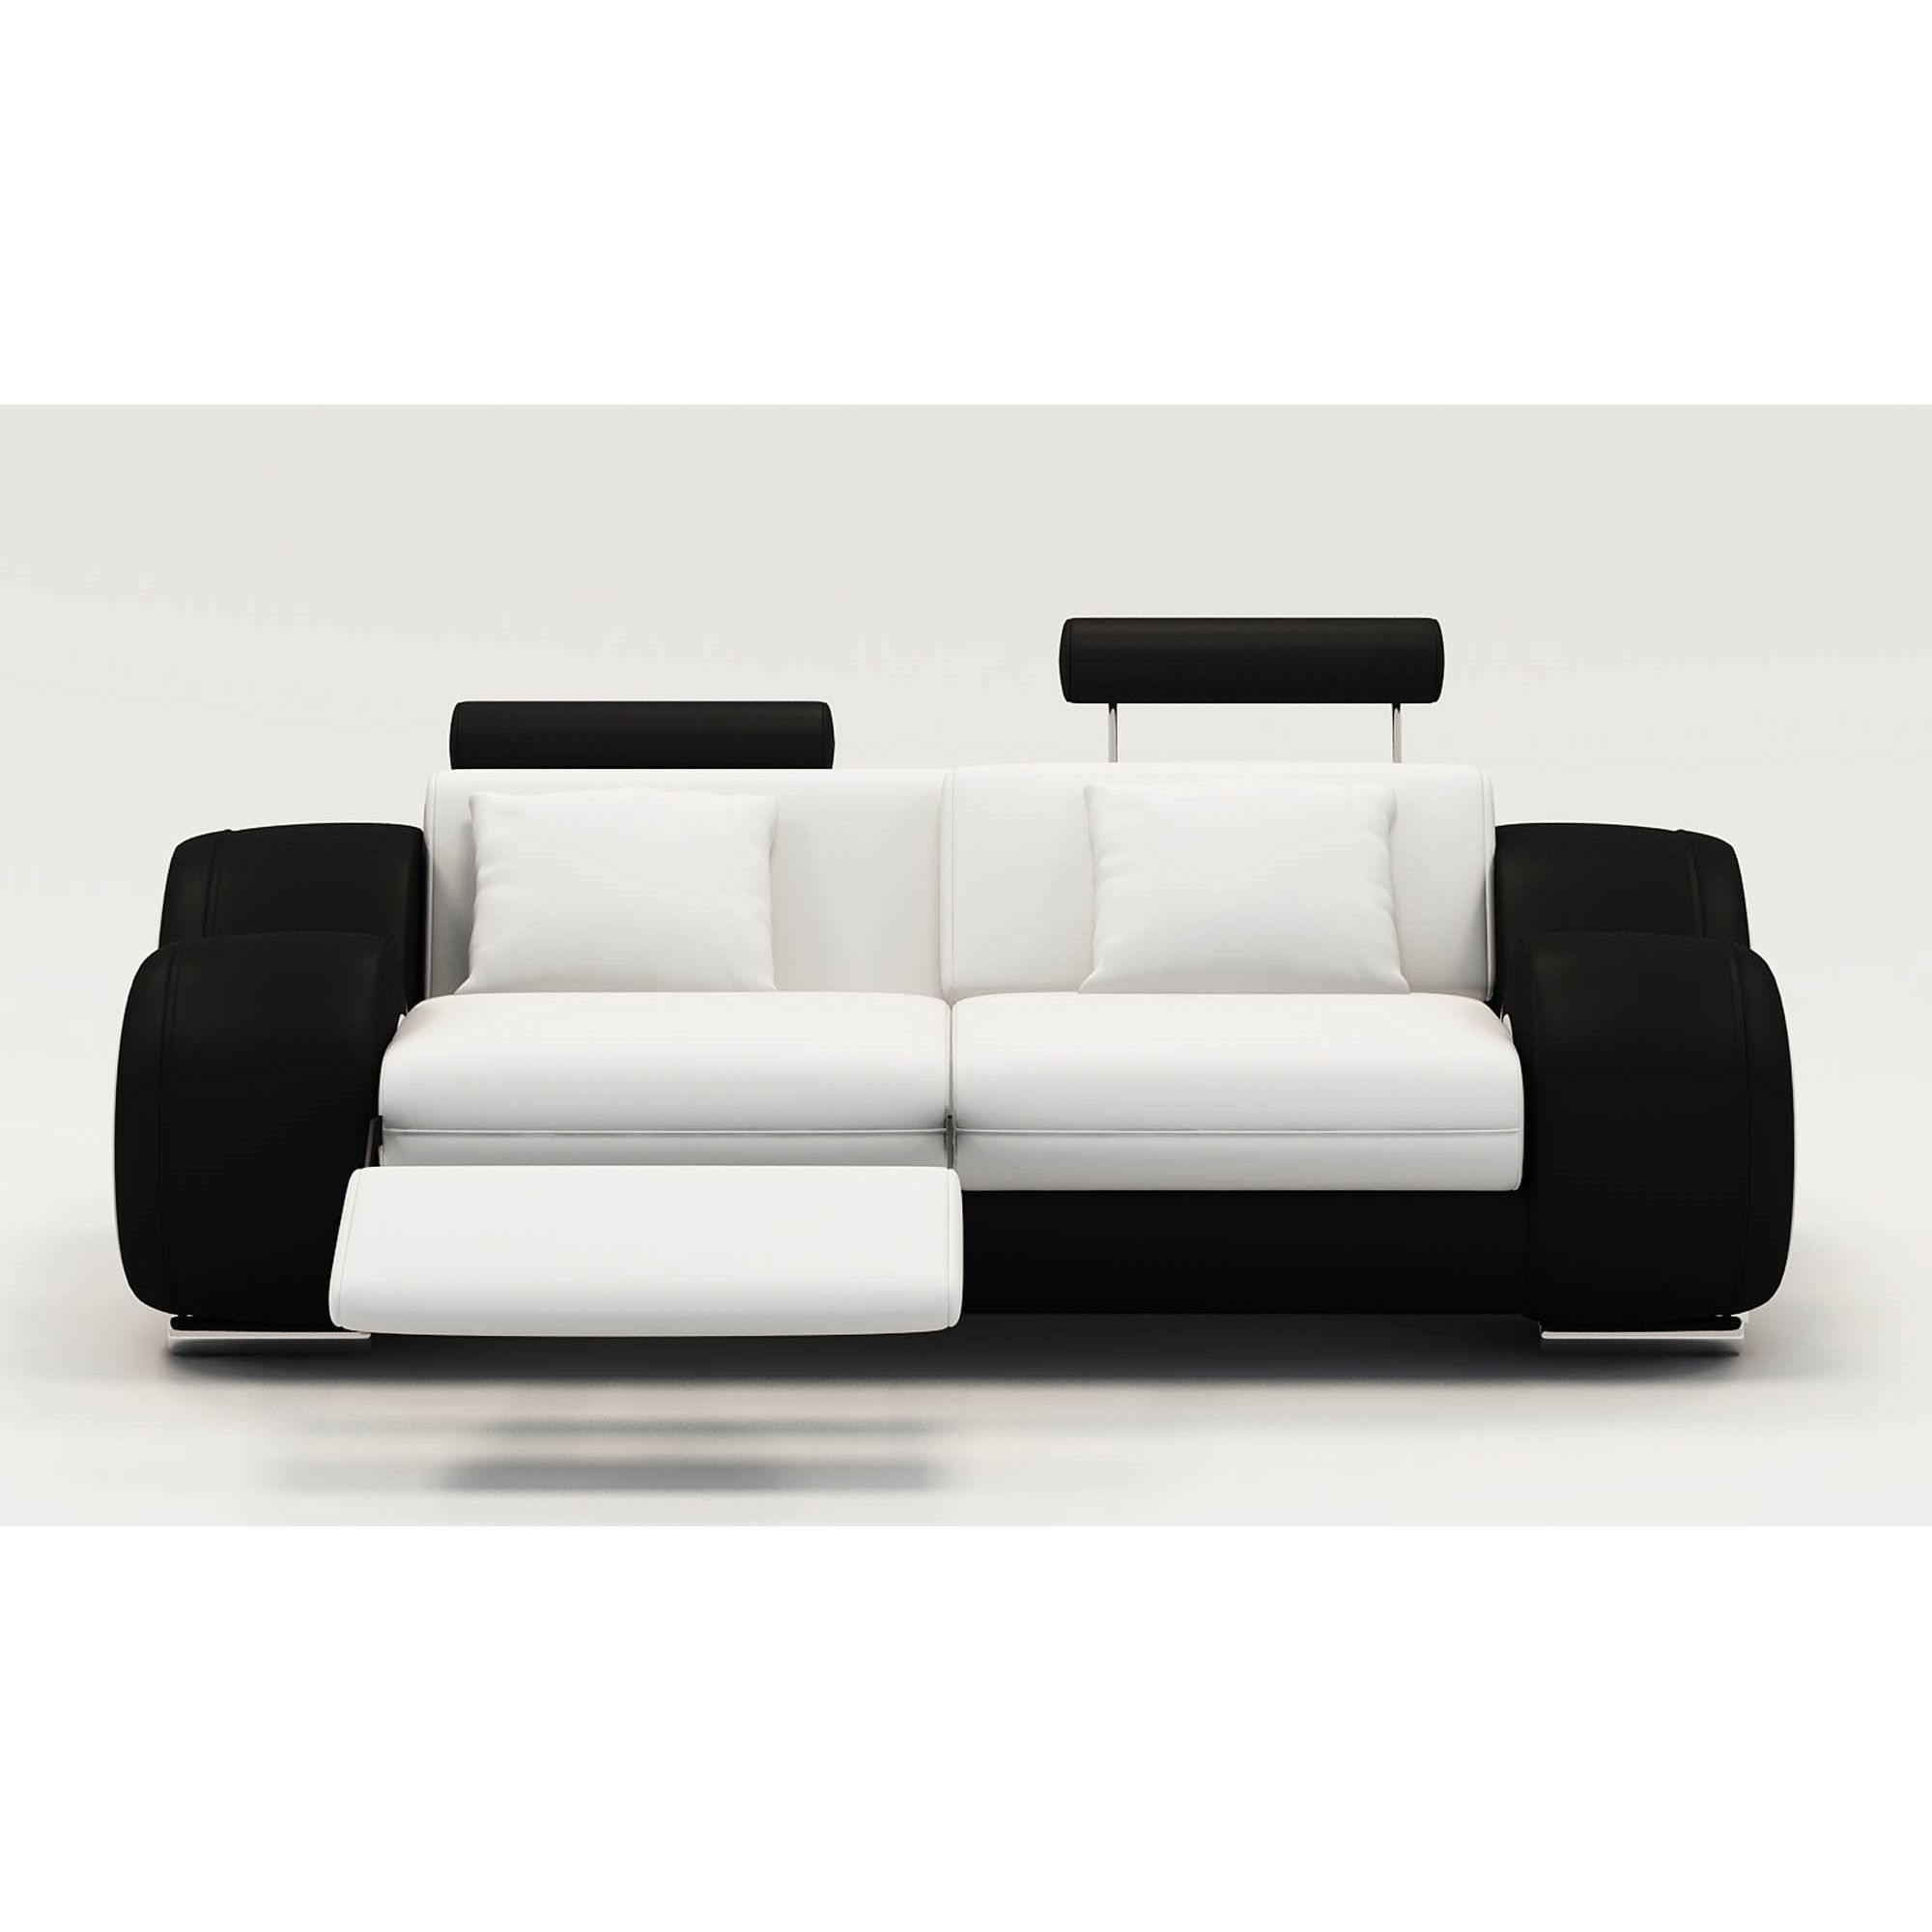 Deco in paris ensemble canape relax design 3 2 1 places blanc et noir oslo - Canape noir et blanc but ...